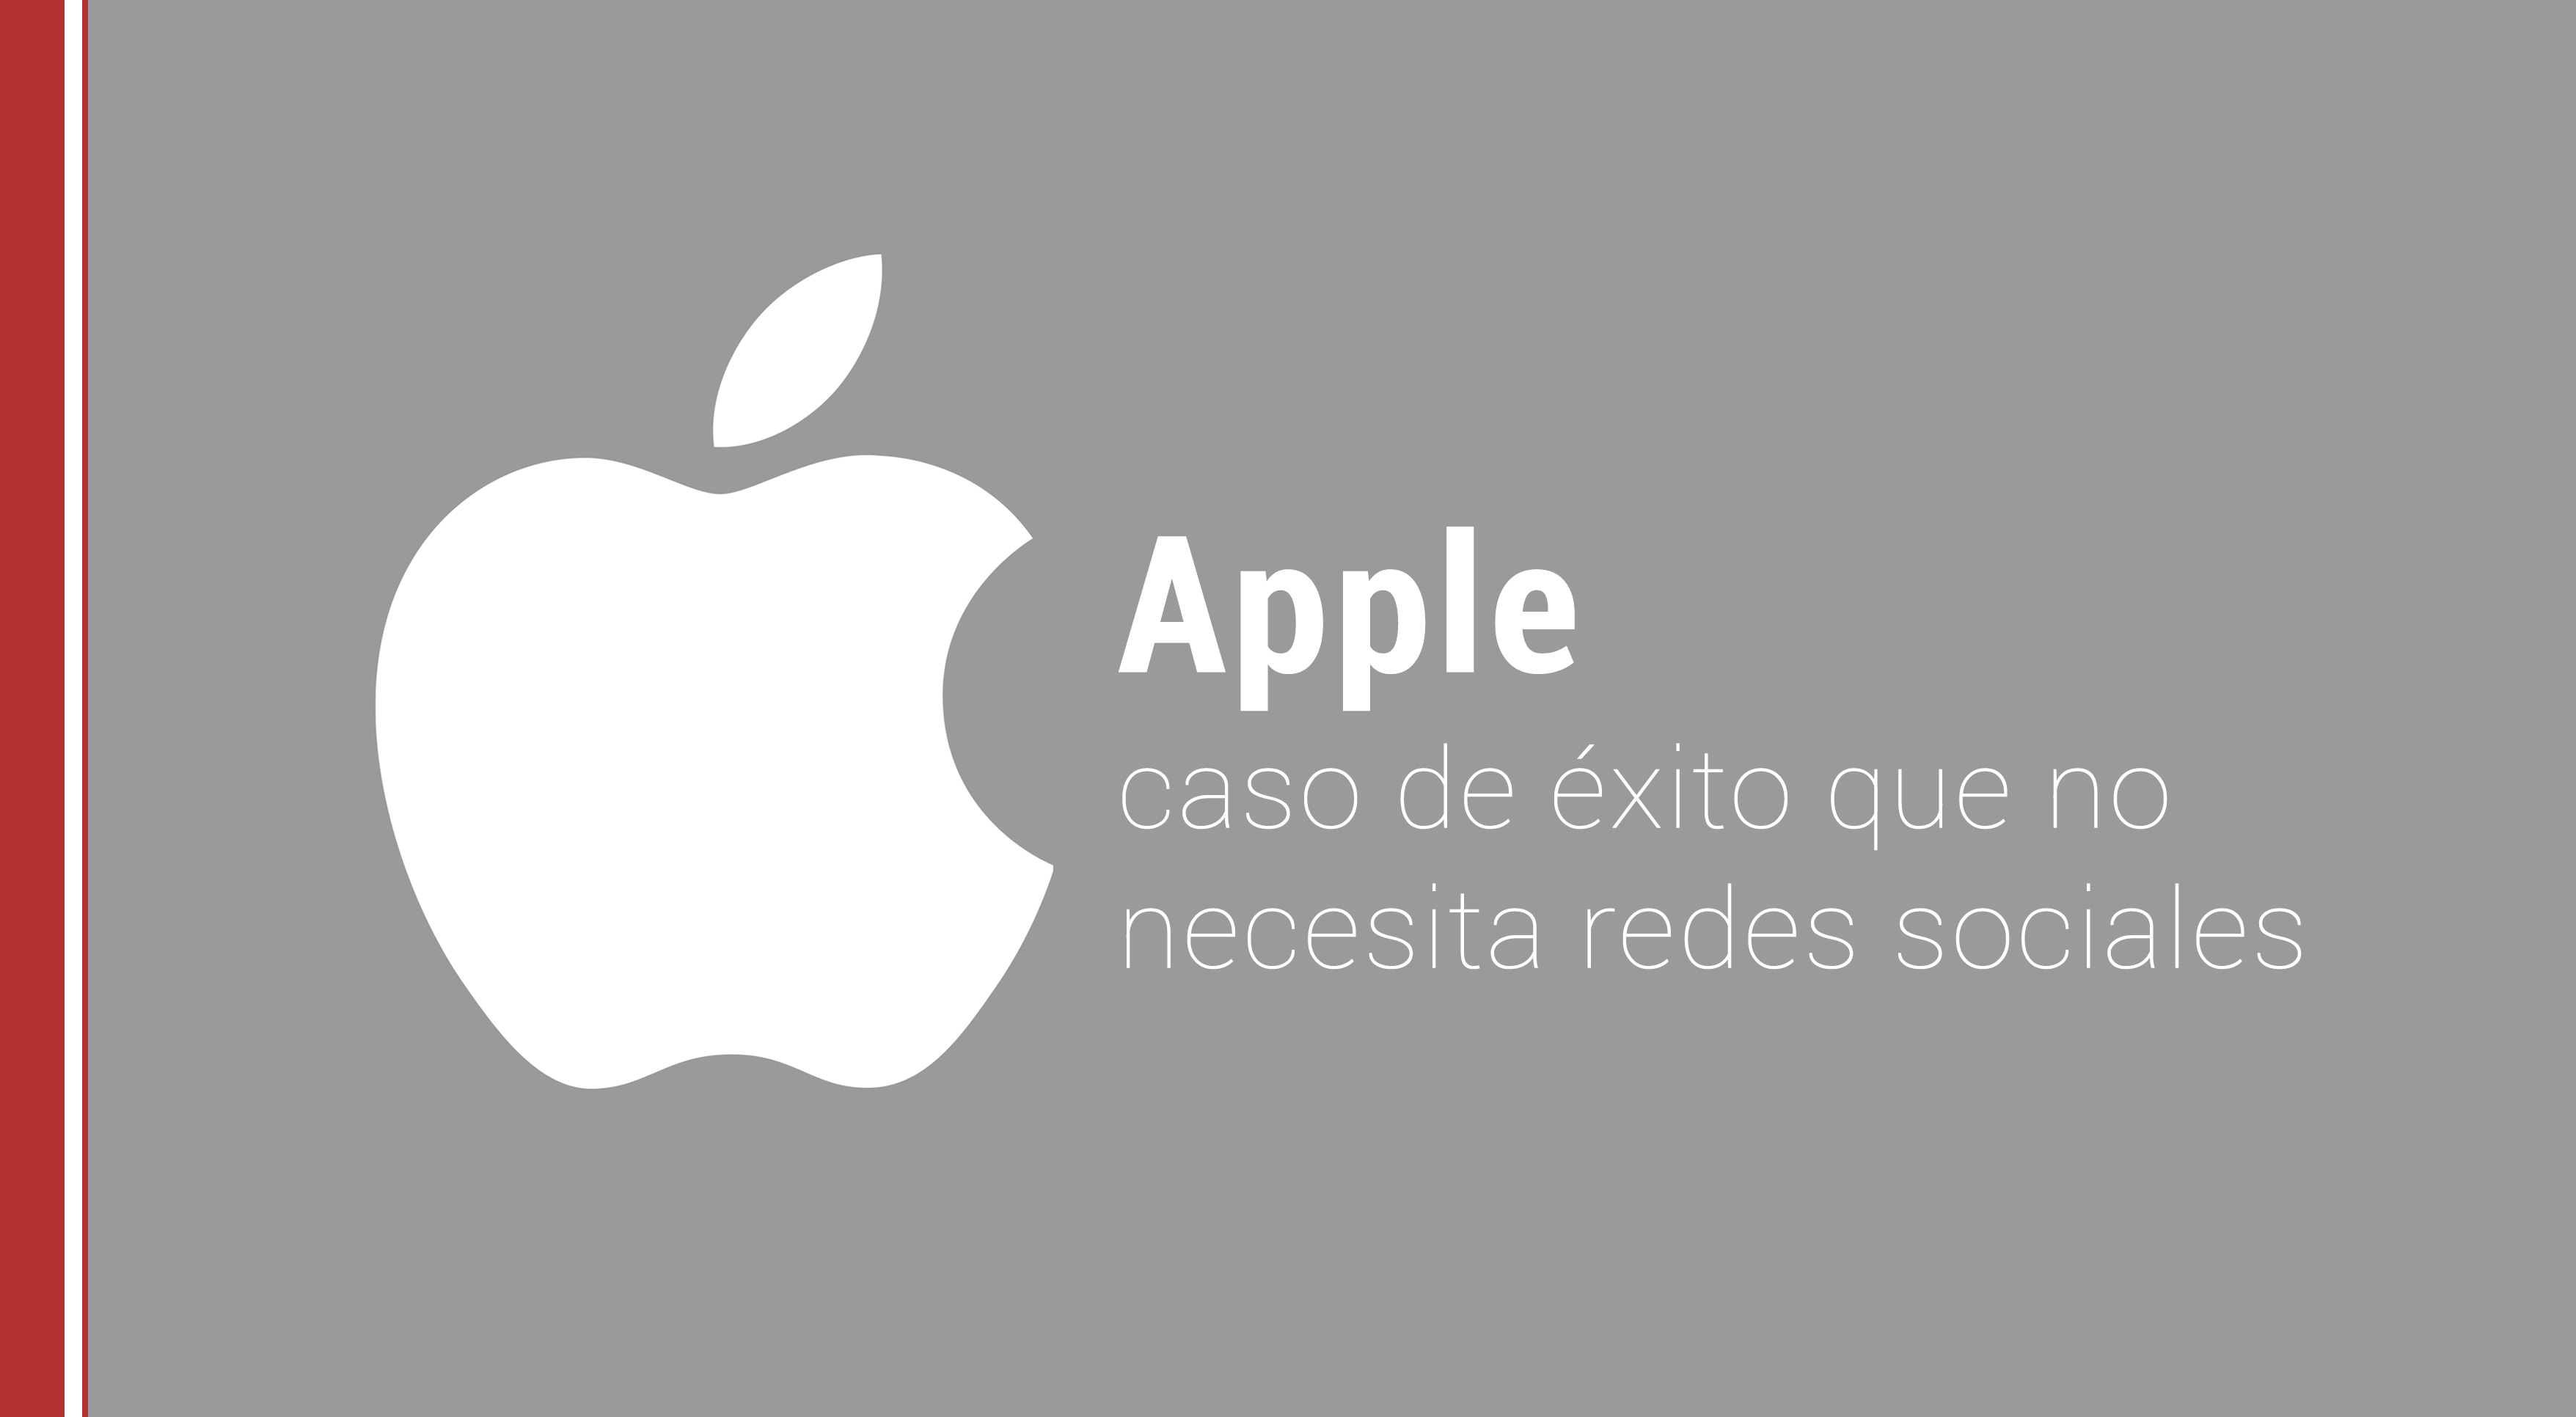 apple como caso de exito